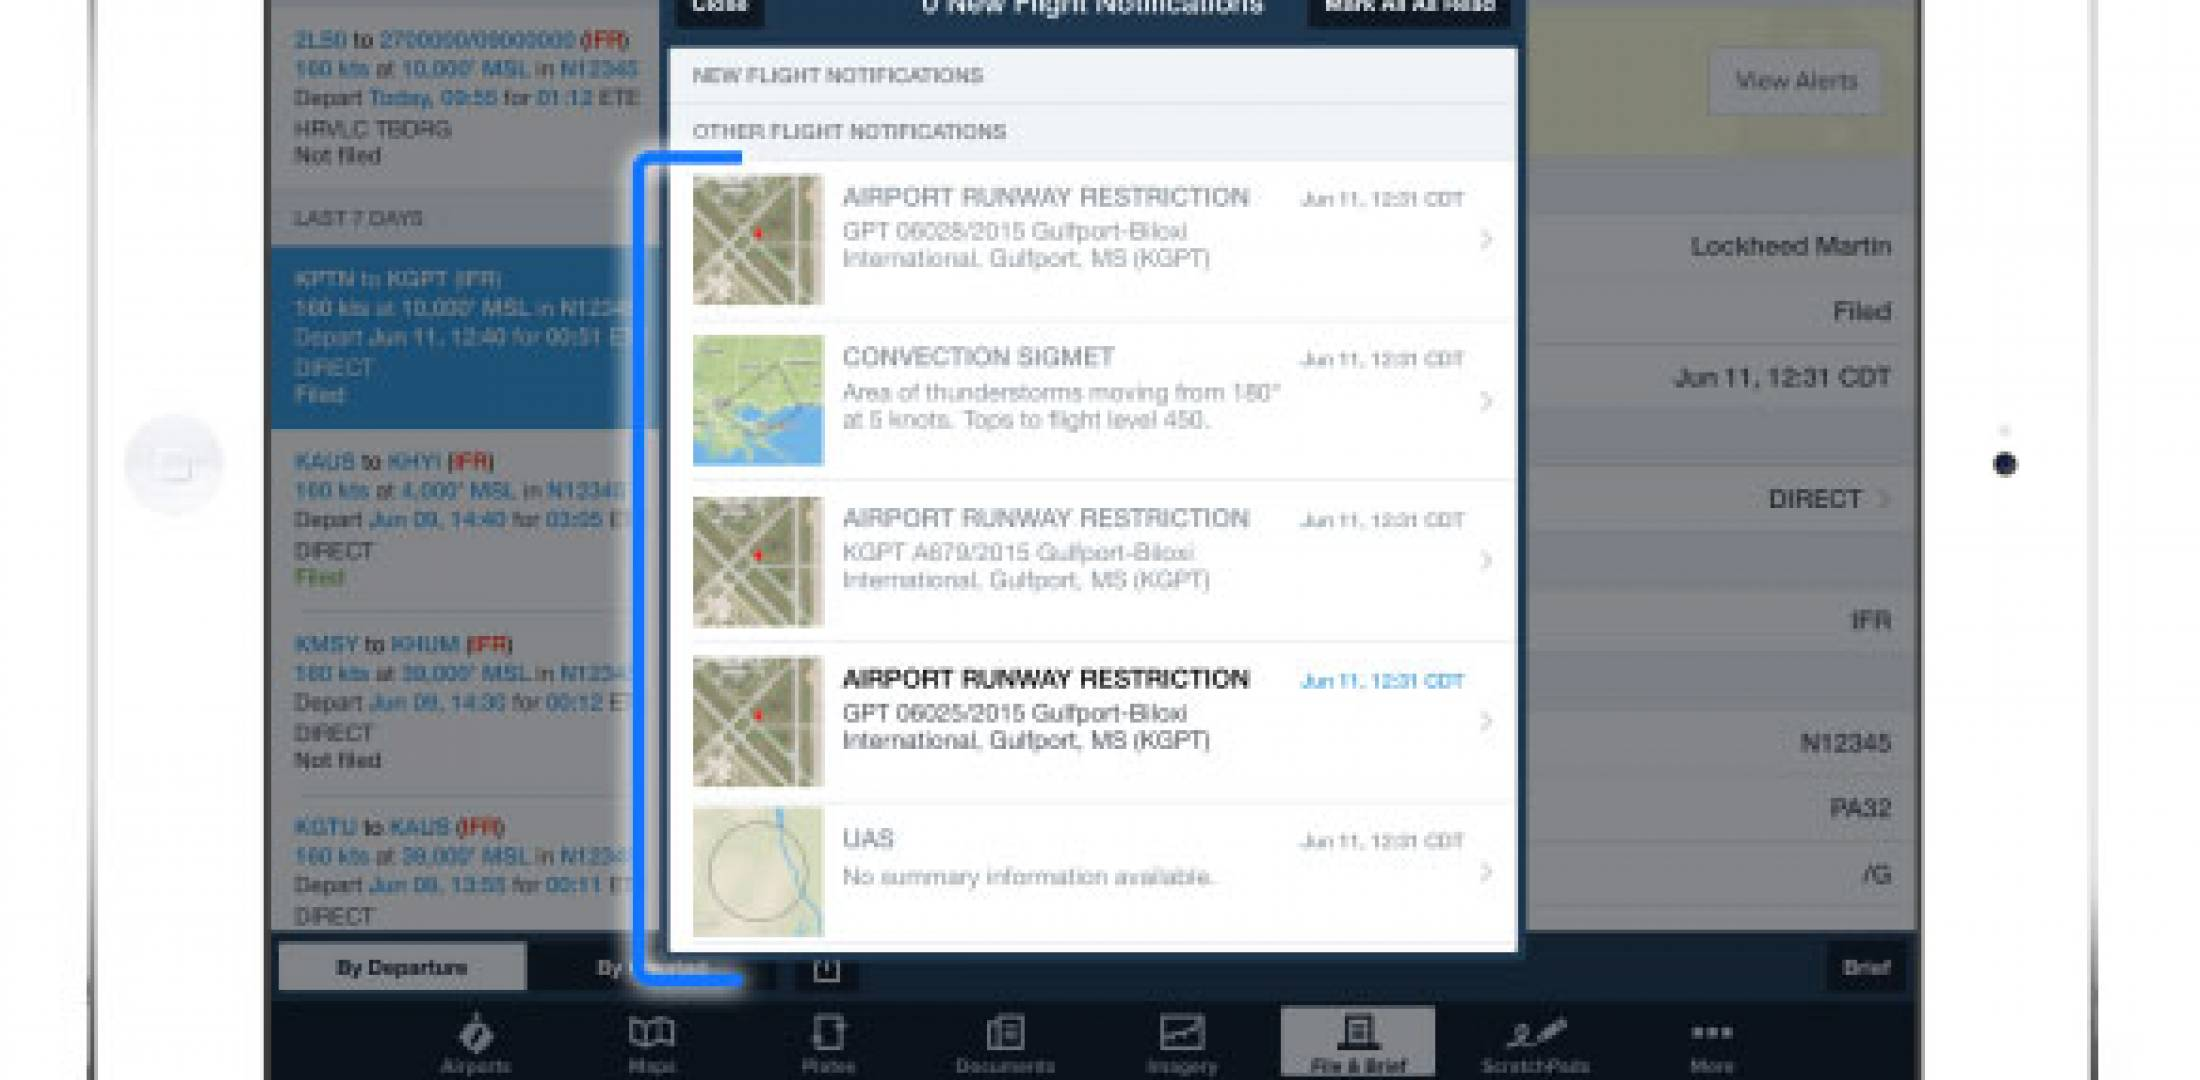 graphical flight notifications